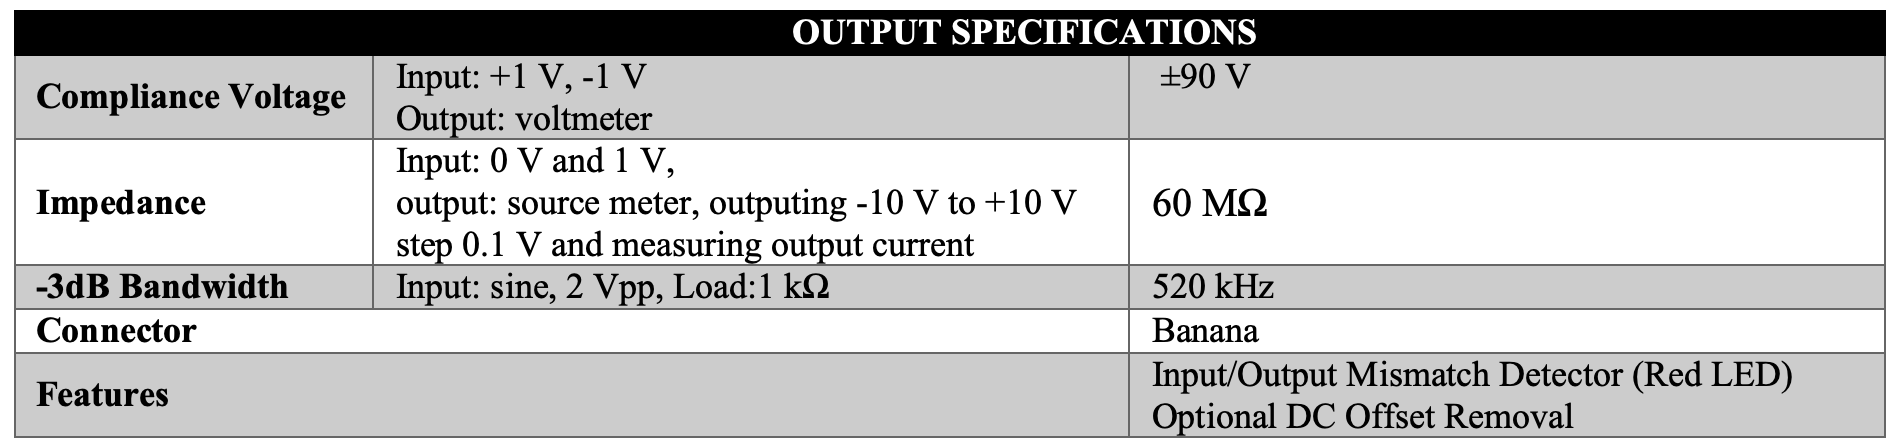 Caputron High Voltage Linear Current Isolator Output Specifications